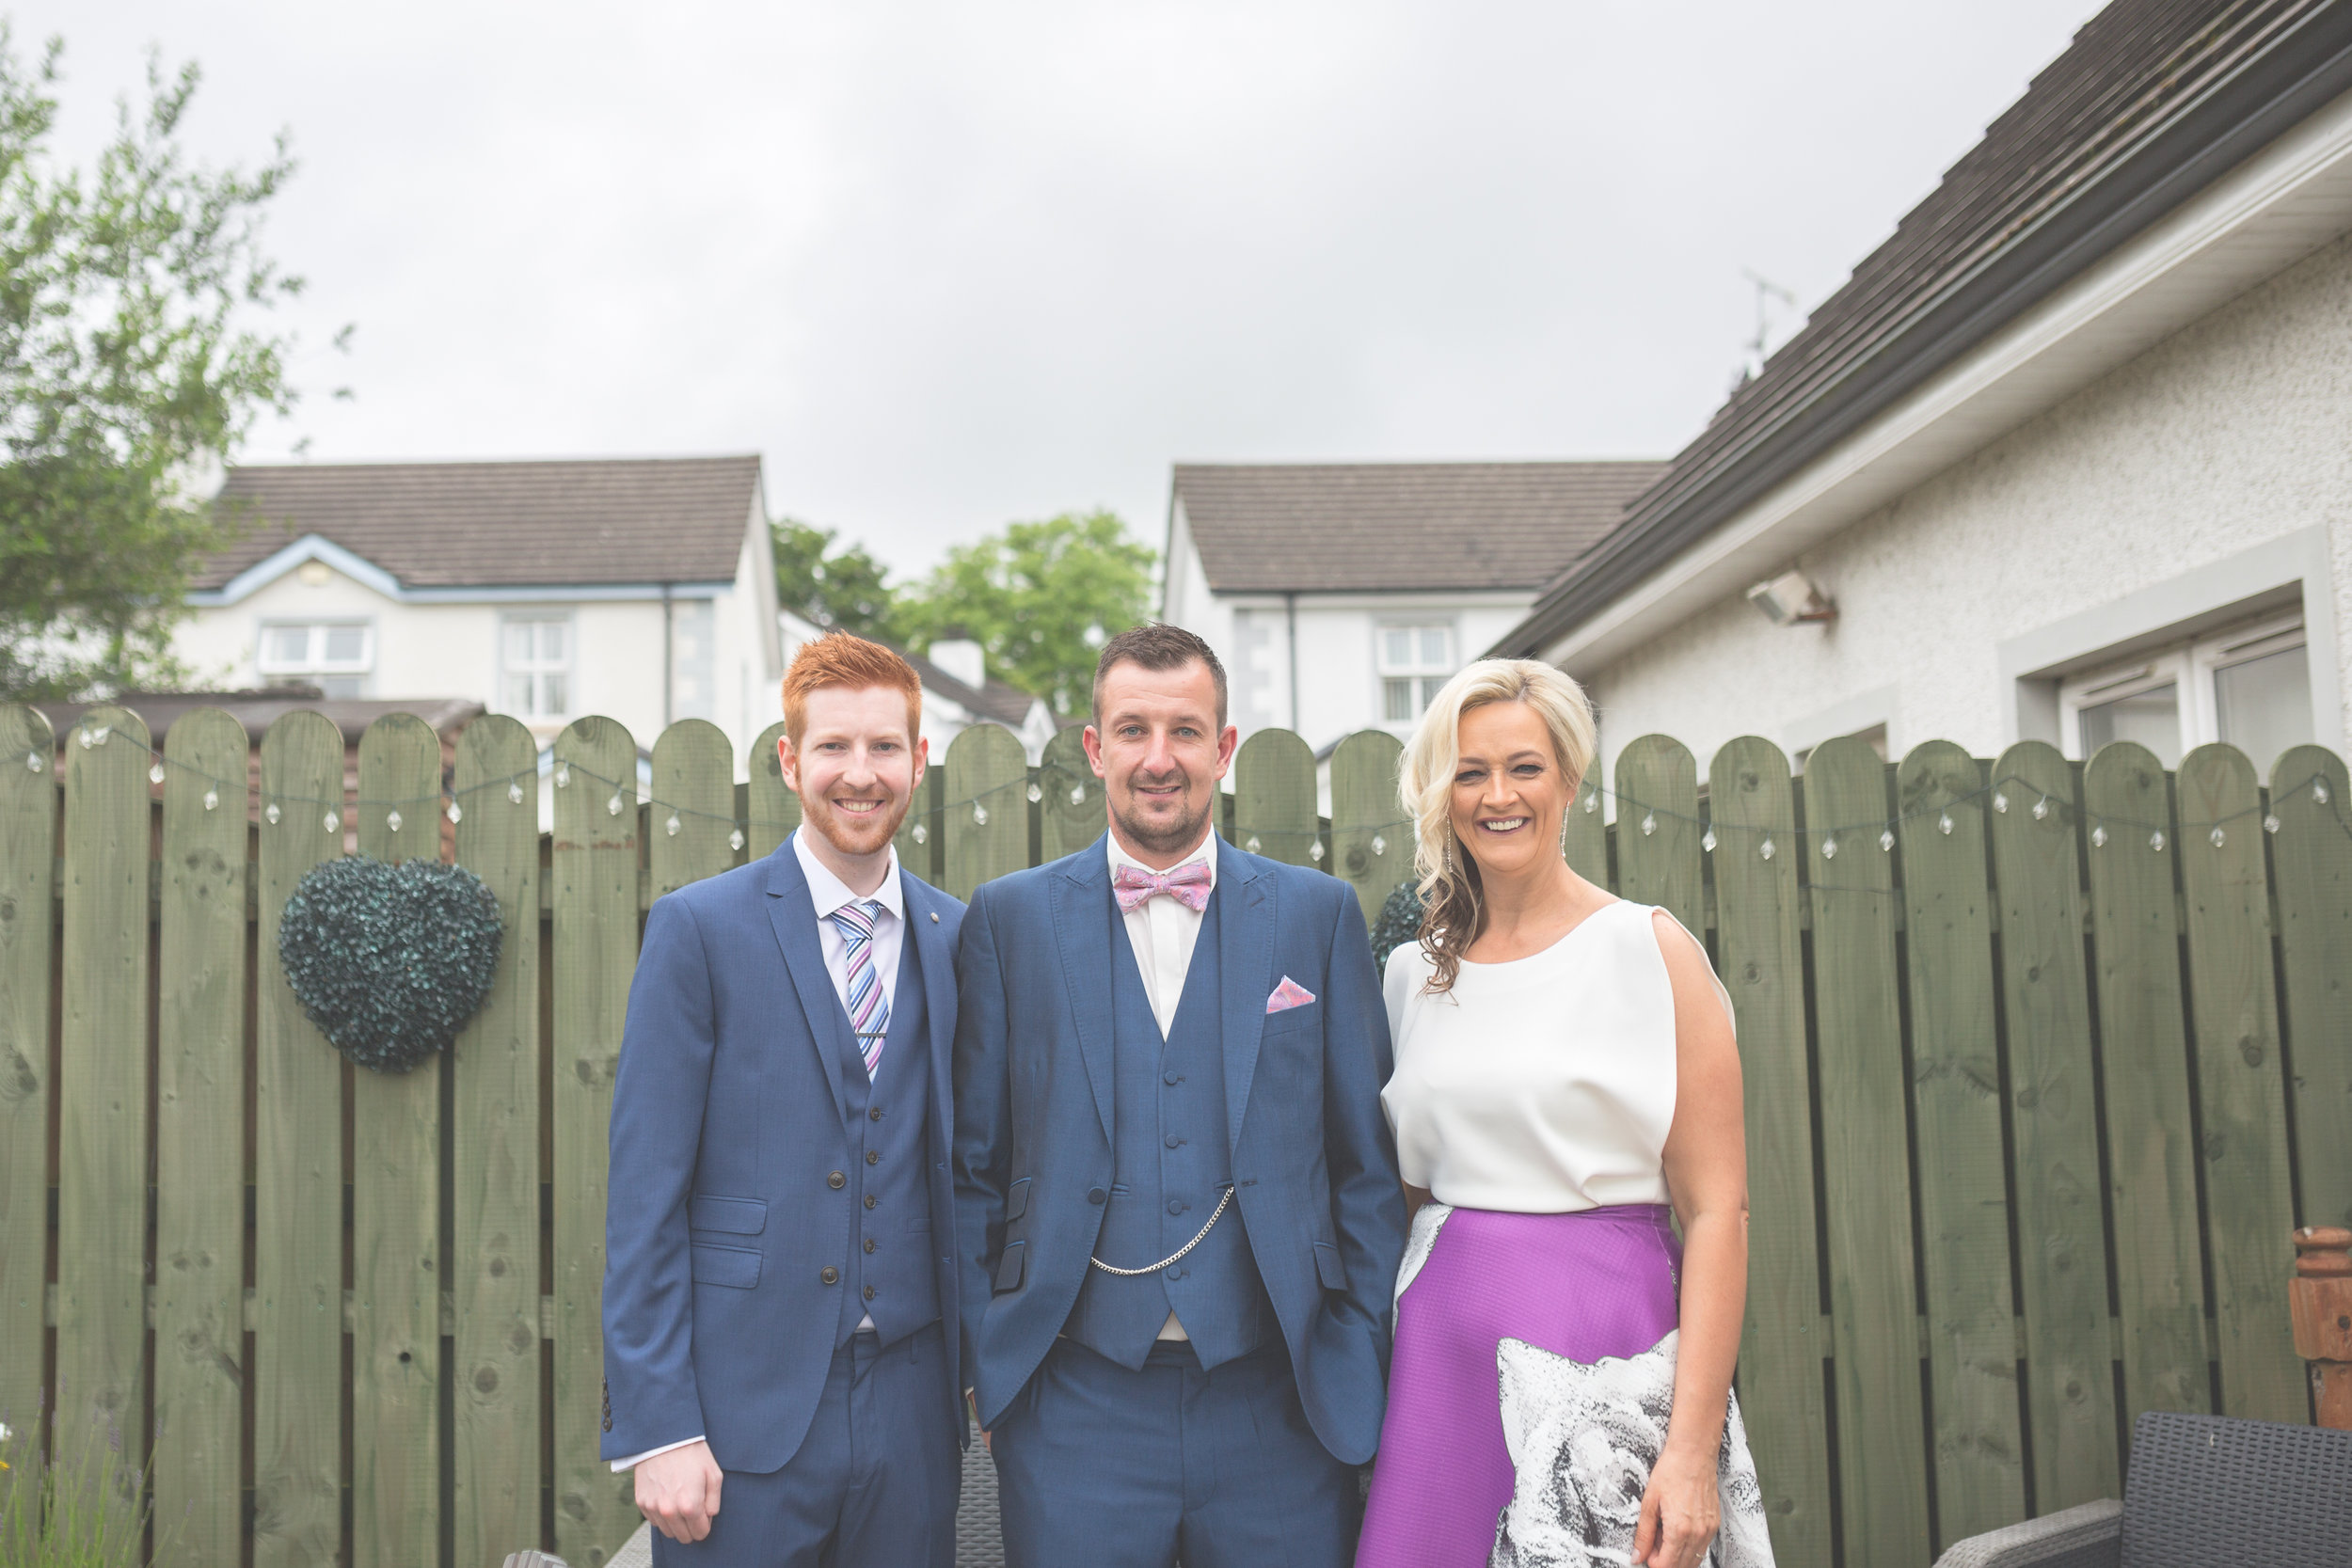 Antoinette & Stephen - Groom & Groomsmen | Brian McEwan Photography | Wedding Photographer Northern Ireland 50.jpg